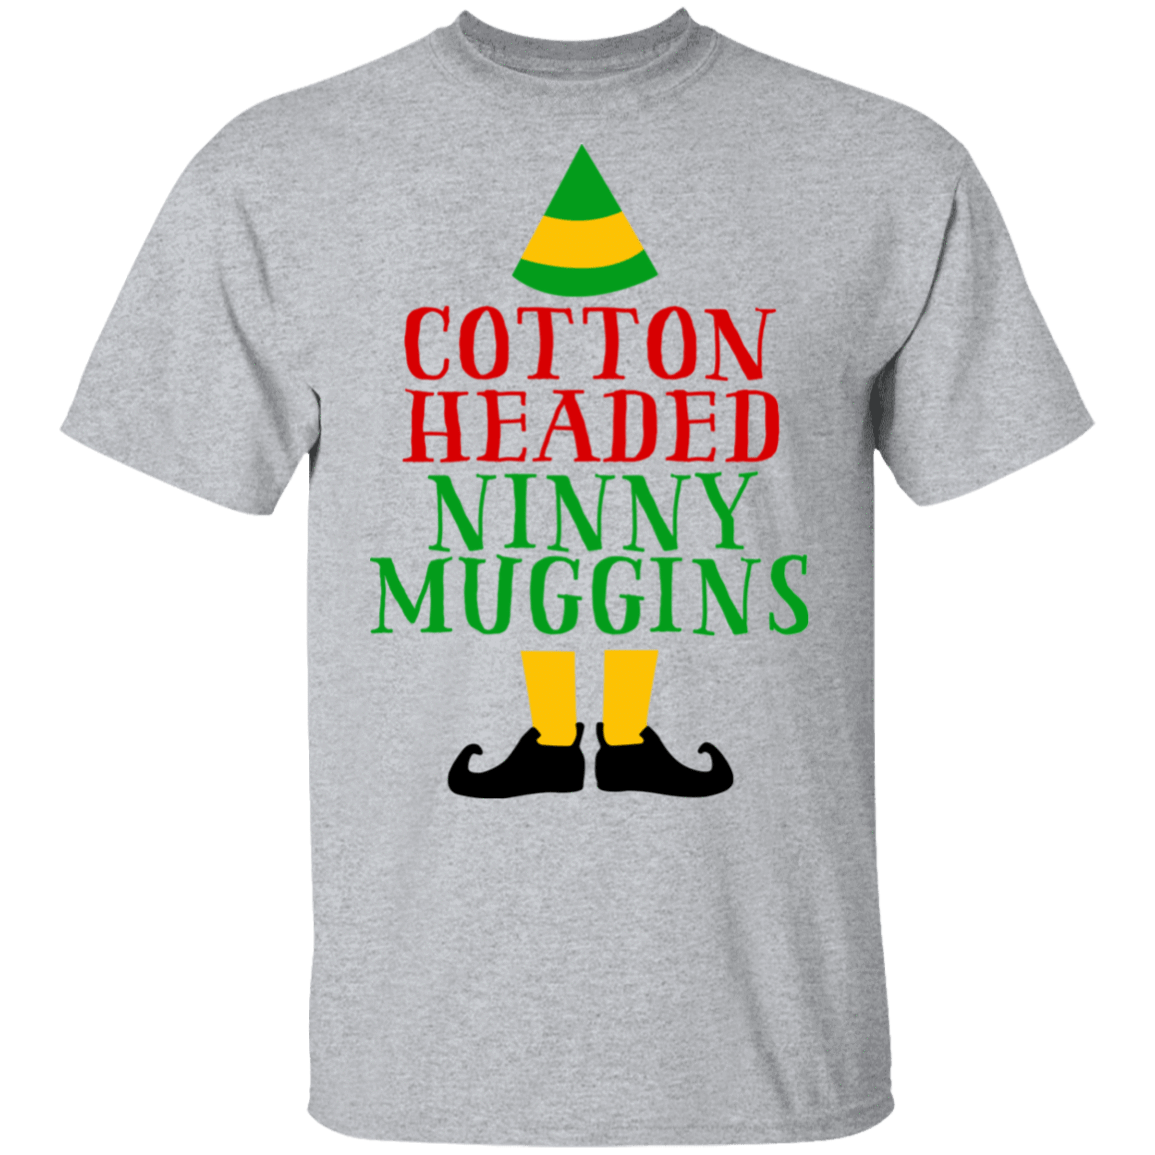 Cotton Headed Ninny Muggins Elf T-Shirts, Hoodies 1049-9972-82220530-48200 - Tee Ript